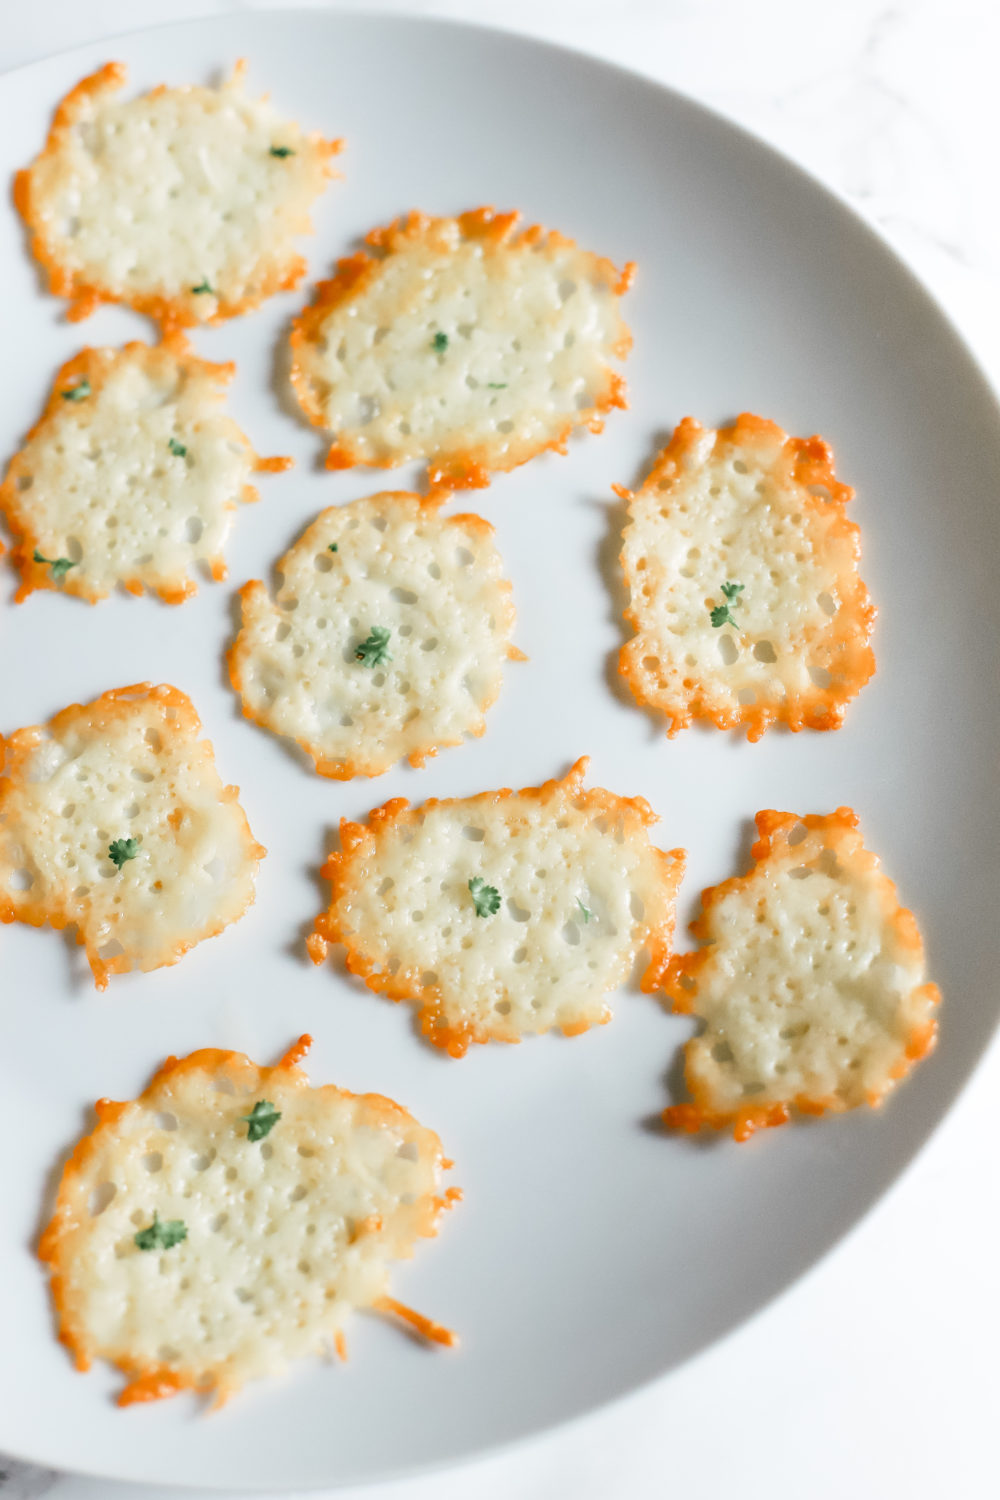 These parmesan chips replace your guilty pleasure while keeping you in ketosis. They're gluten free, low carb, and ketogenic friendly - only 5 minutes to make! Parmesan Crips | Keto Chips | Keto snacks | Weight Loss | Atkins Diet | Keto Diet | Easy Low Carb Snacks | Appetizers | Christmas Recipe | Holiday Appetizer | Oven Baked |